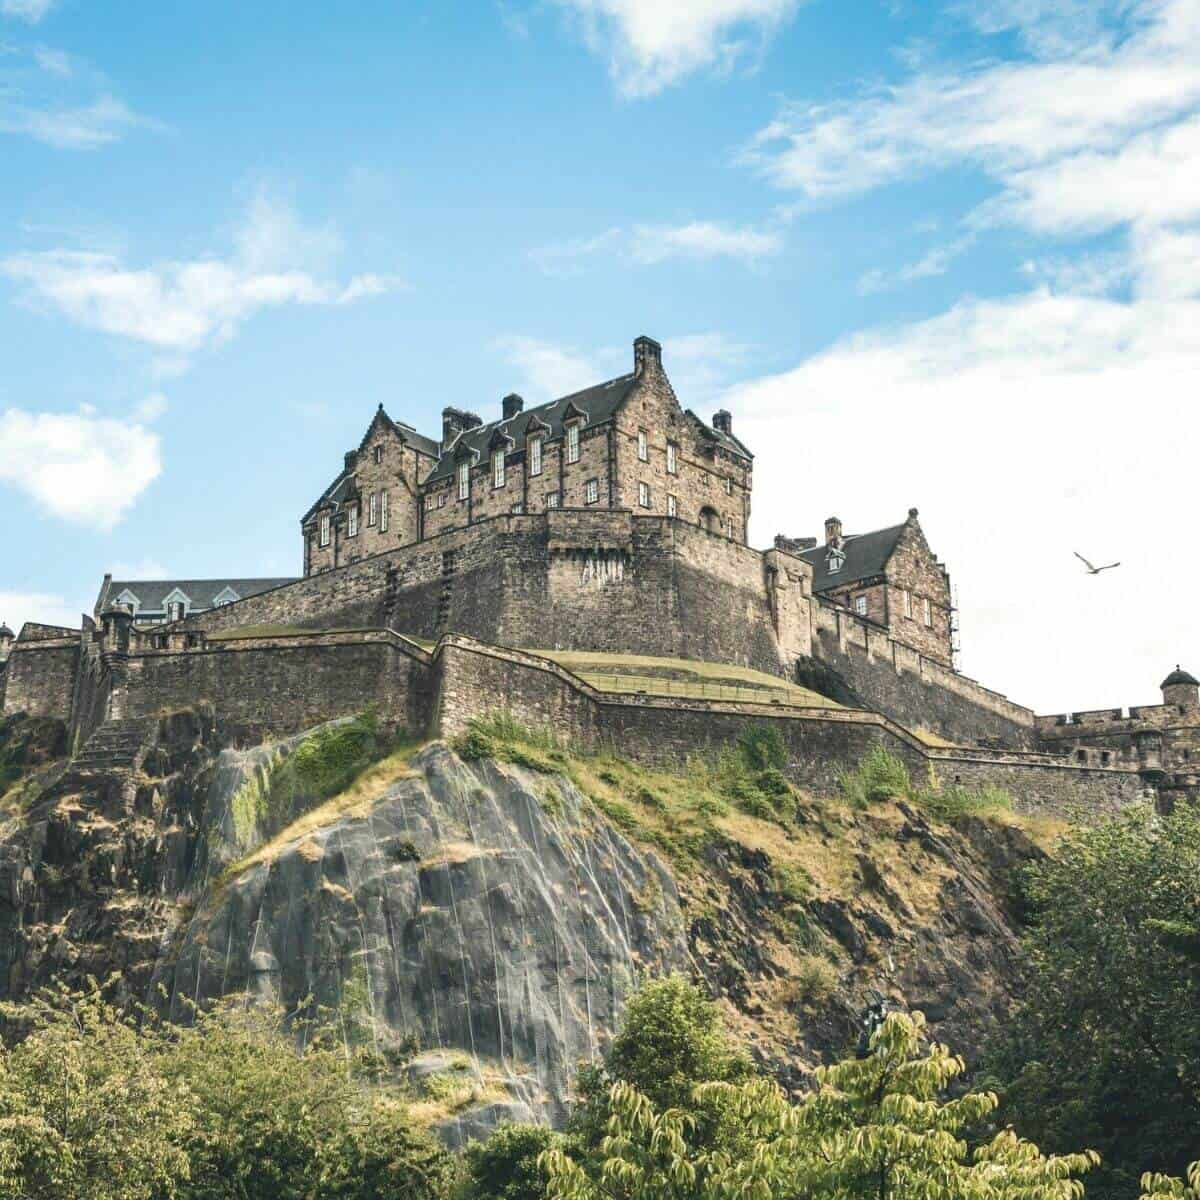 View of the Edinburgh Castle in Scotland from below.